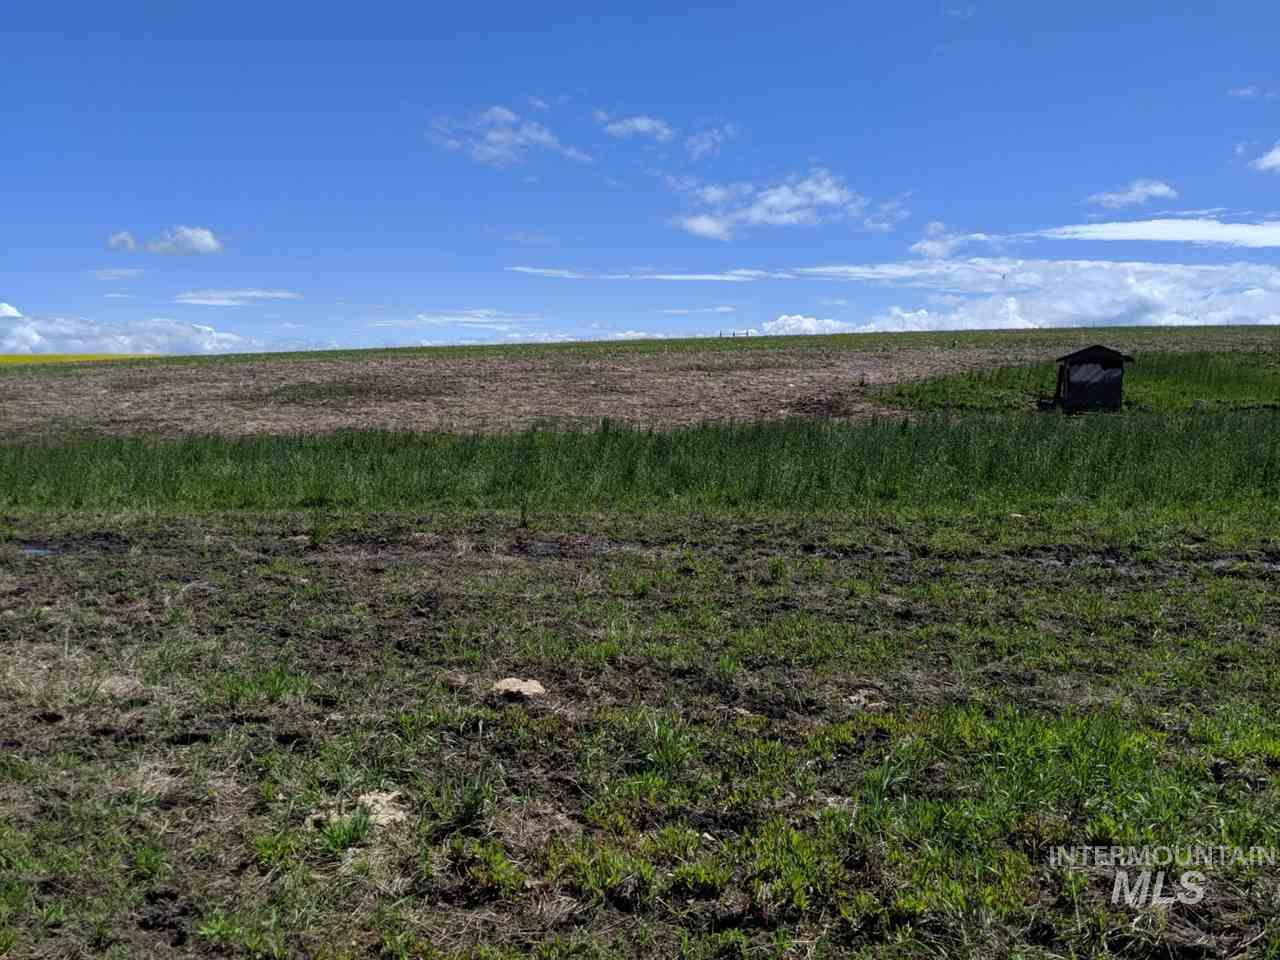 TBD Halford Road, Grangeville, Idaho 83530, Land For Sale, Price $89,000, 98731265